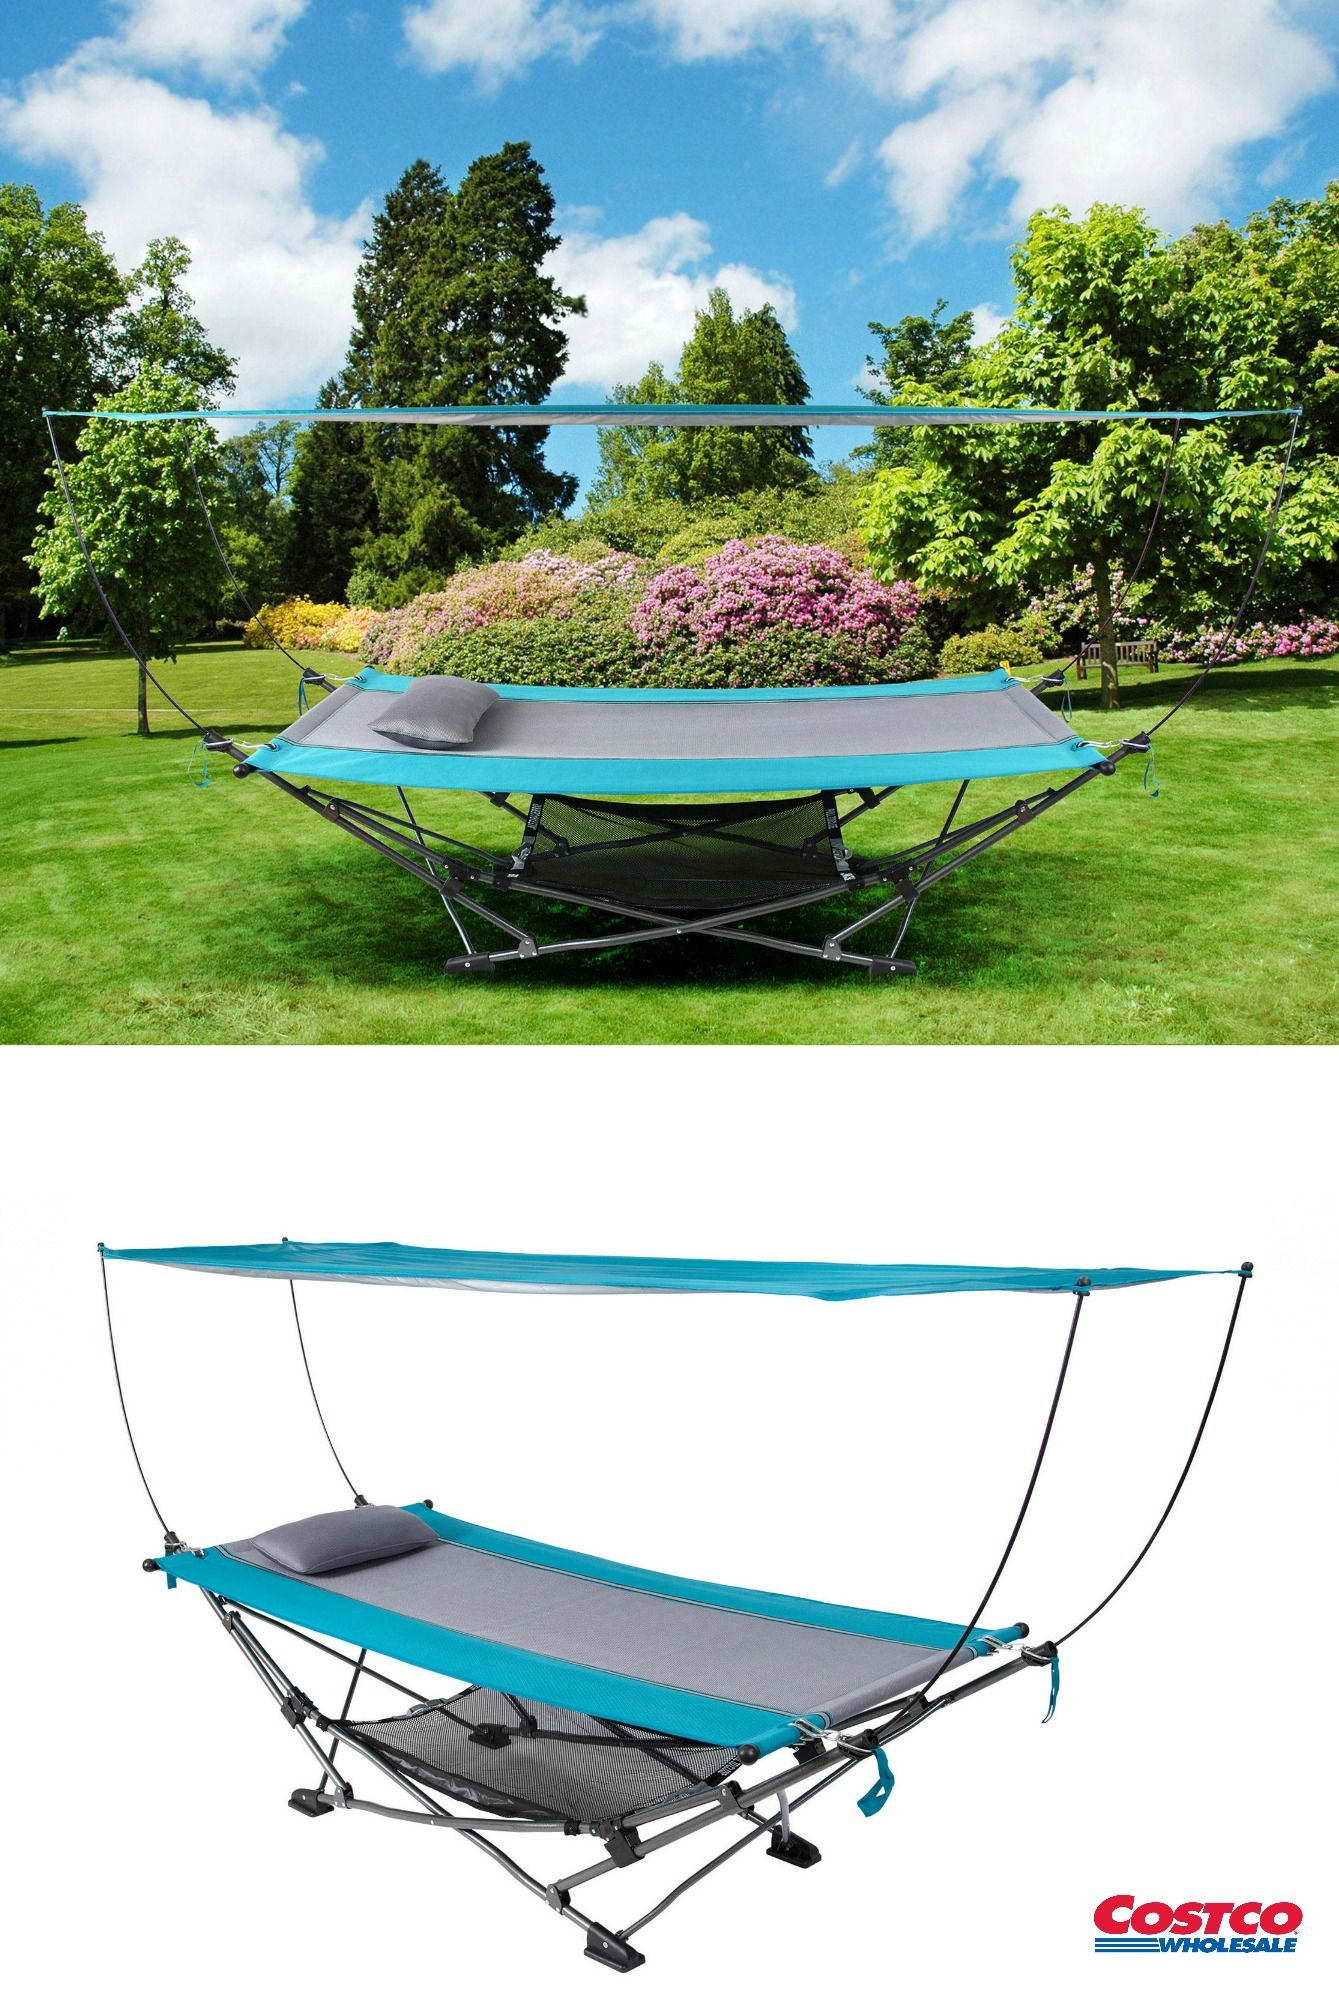 This Folding Hammock With Canopy Sets Up In Minutes Making It Ideal